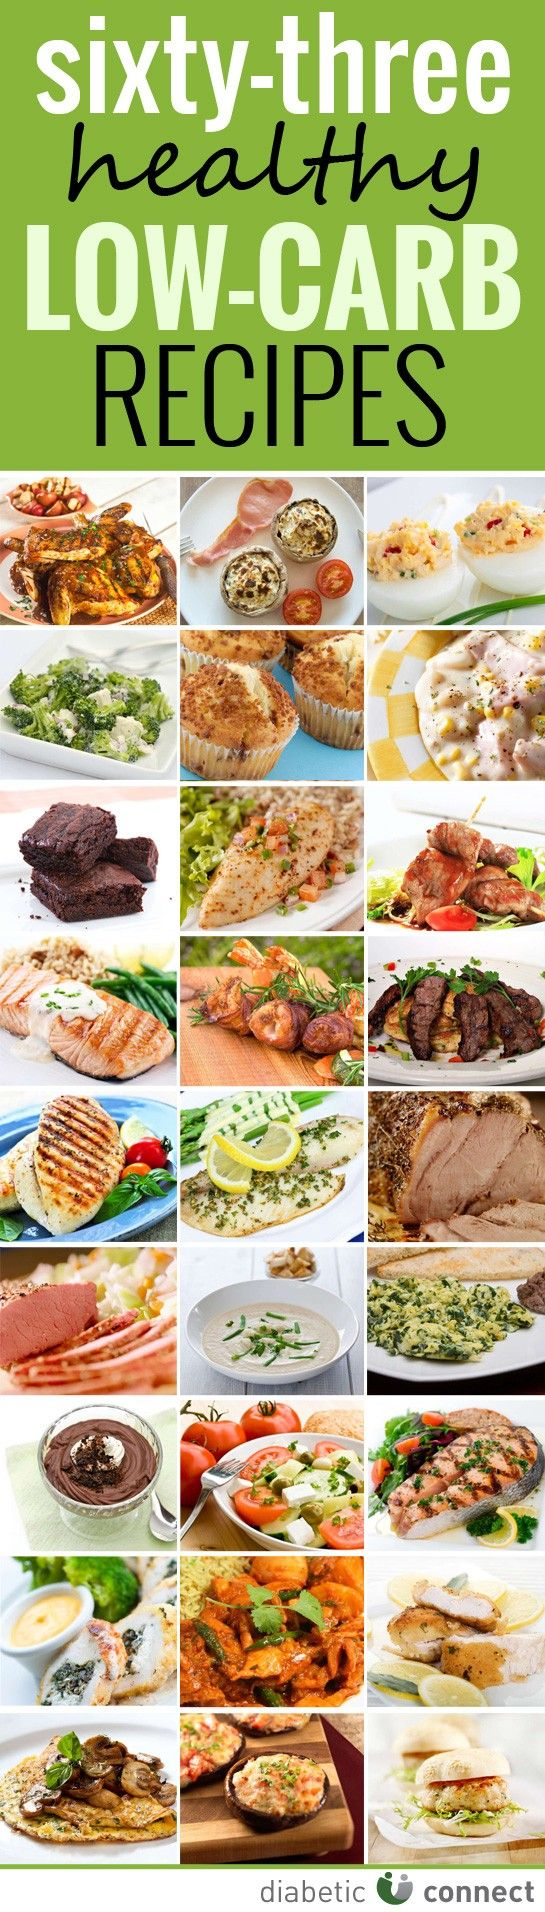 Low-Carb Recipes. 63 great recipes in one place!